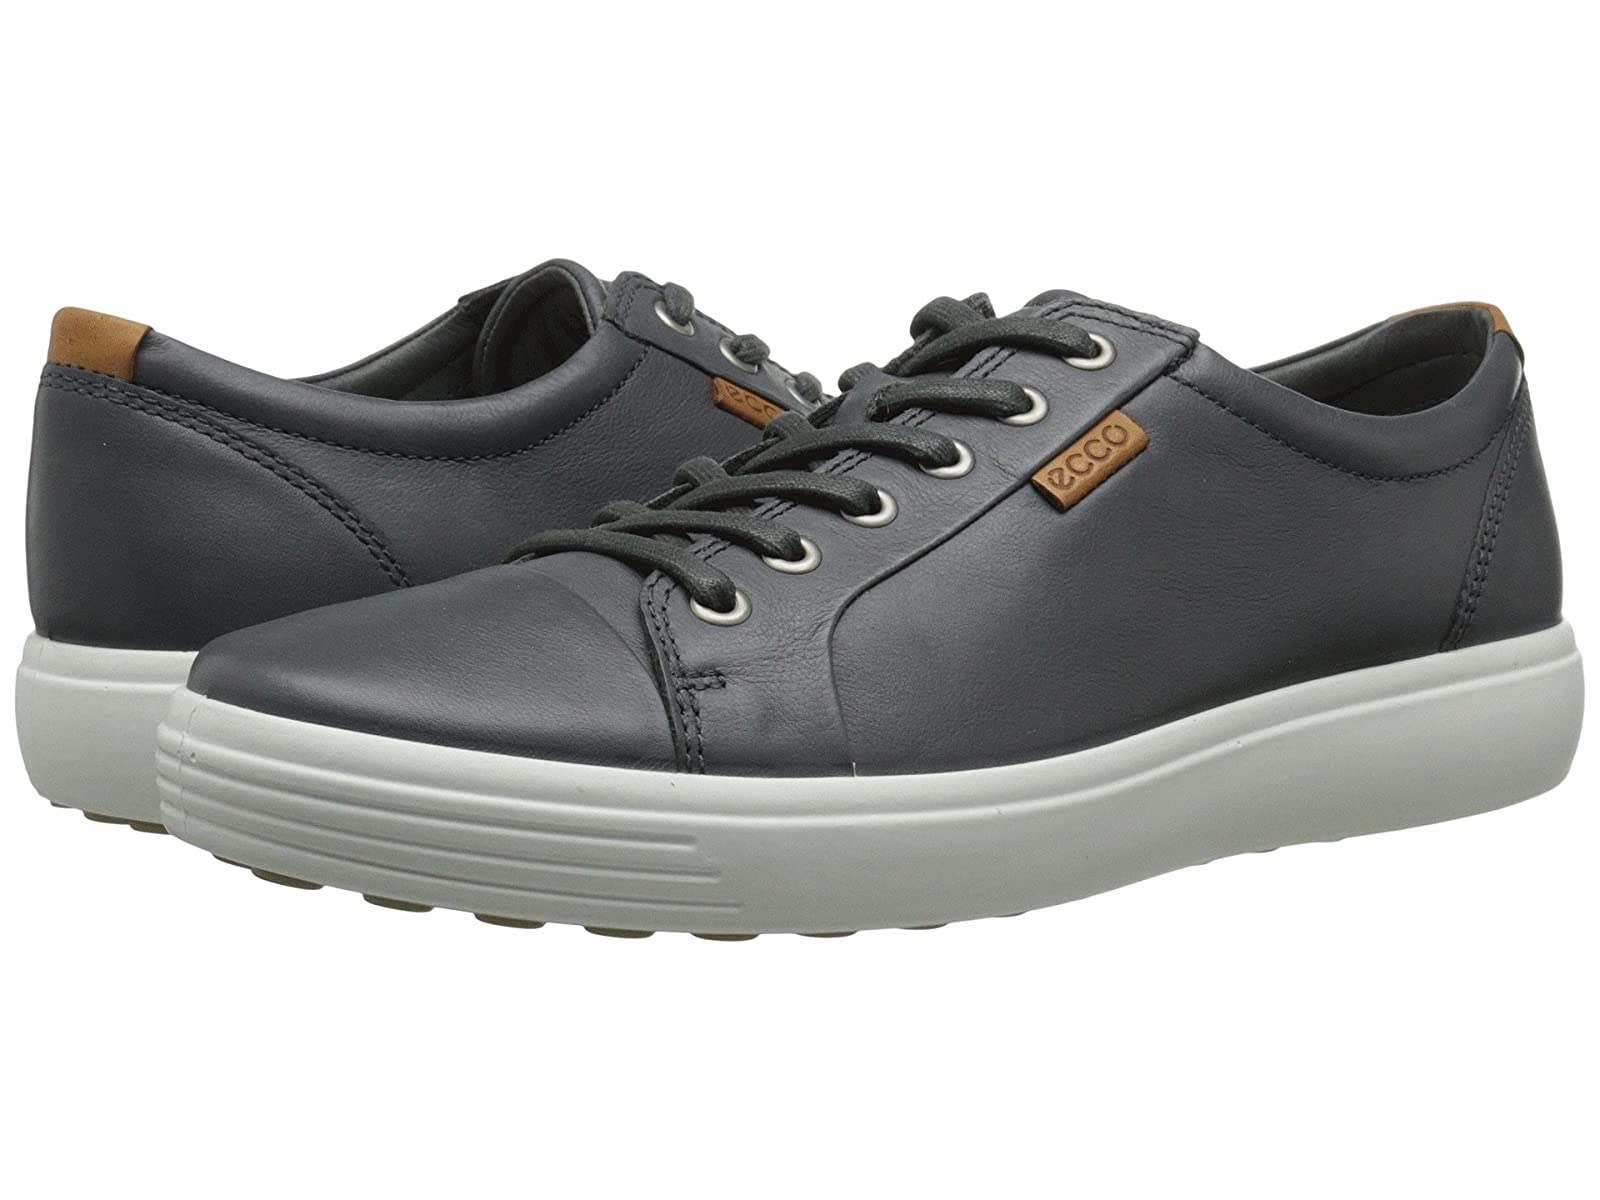 ECCO Soft 7 SneakerAtmospheric grades have affordable shoes